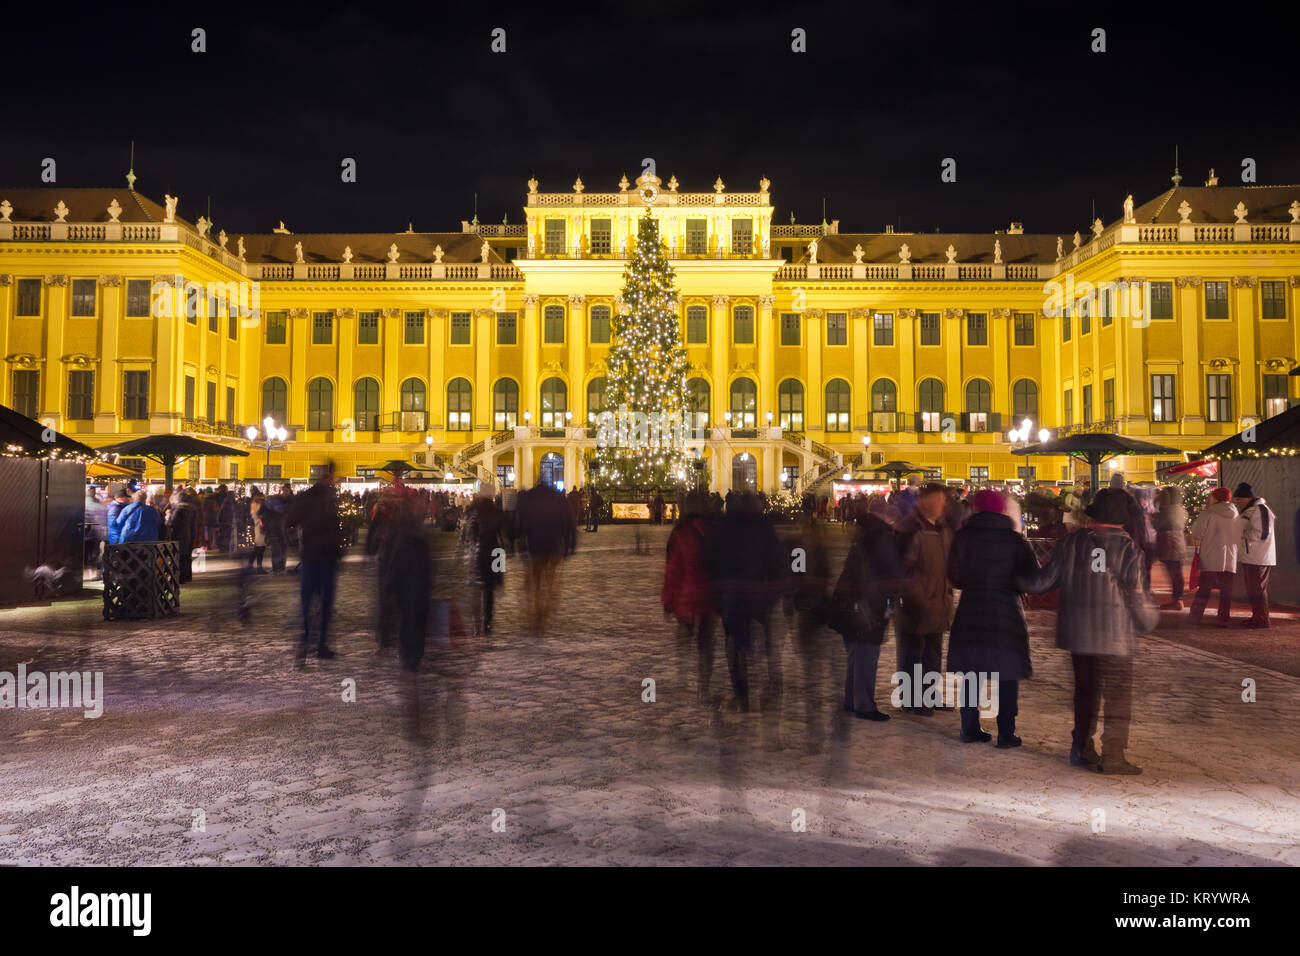 View of illuminated Schönbrunn palace in Christmas time with fairy lights decorated Christmas tree at dusk - Stock Image